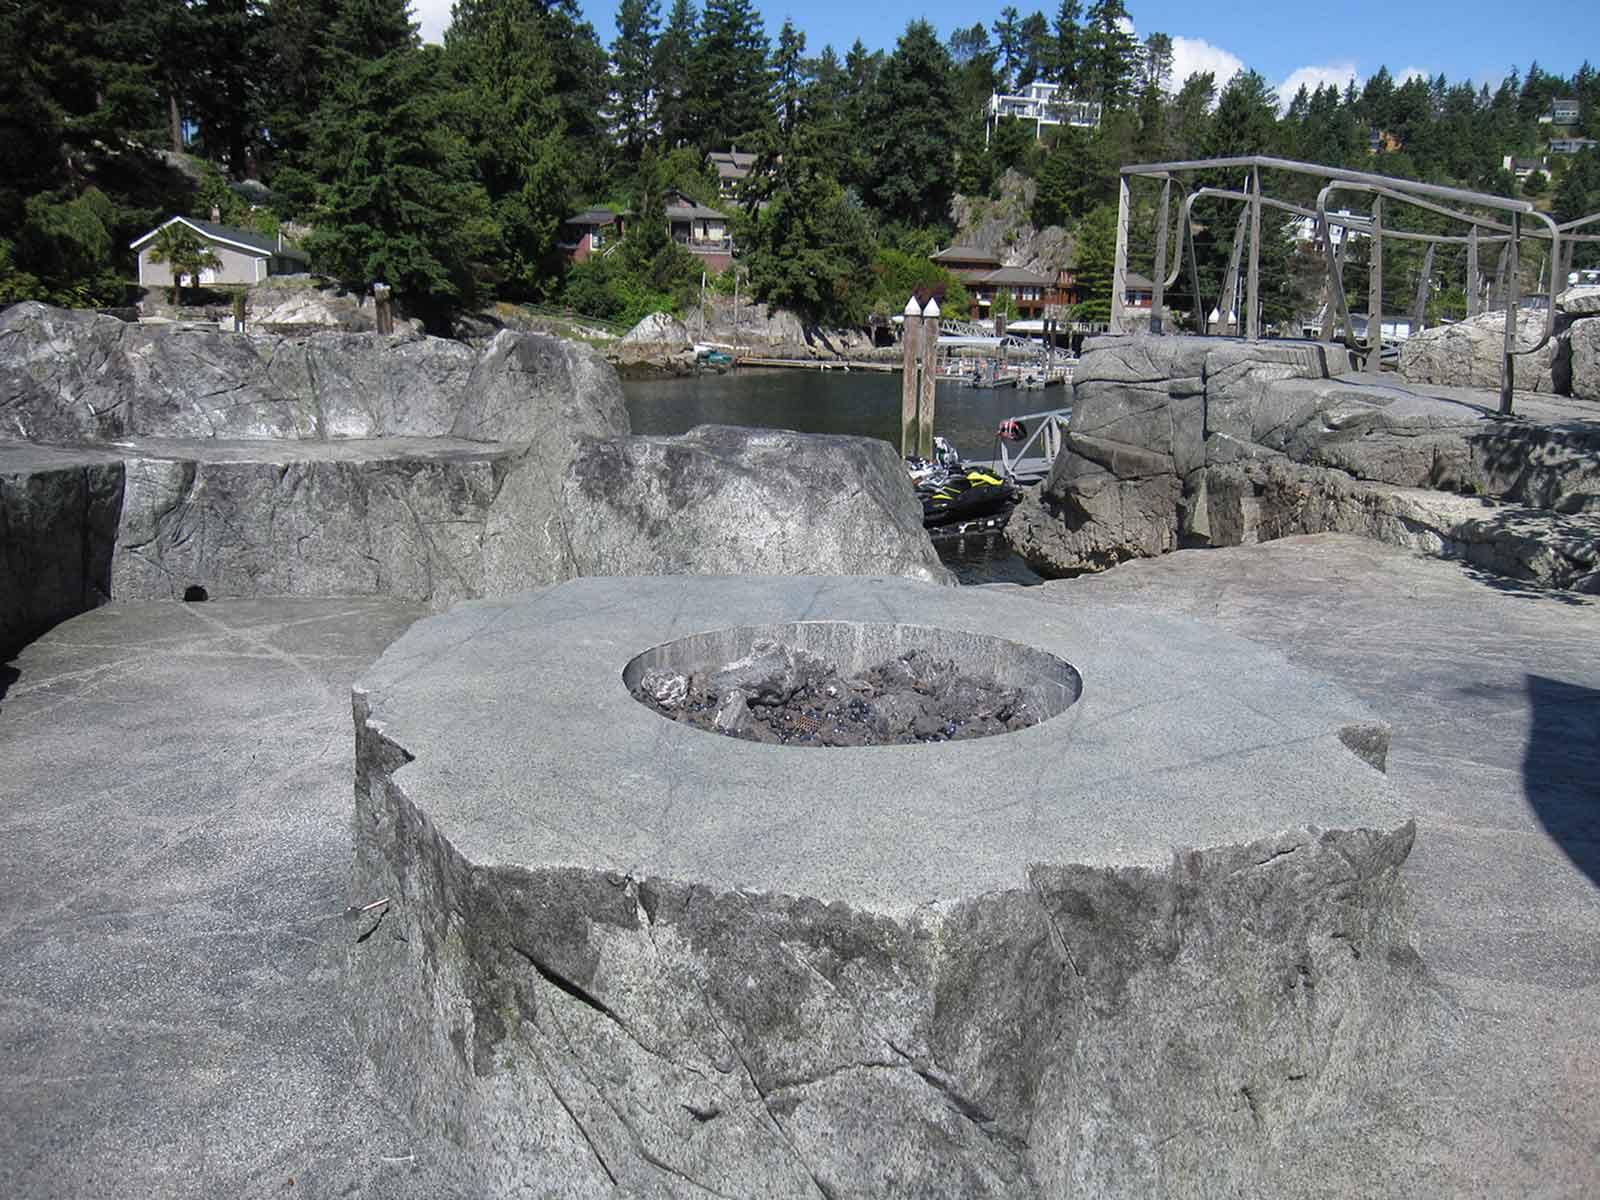 Concrete custom designed fire pit